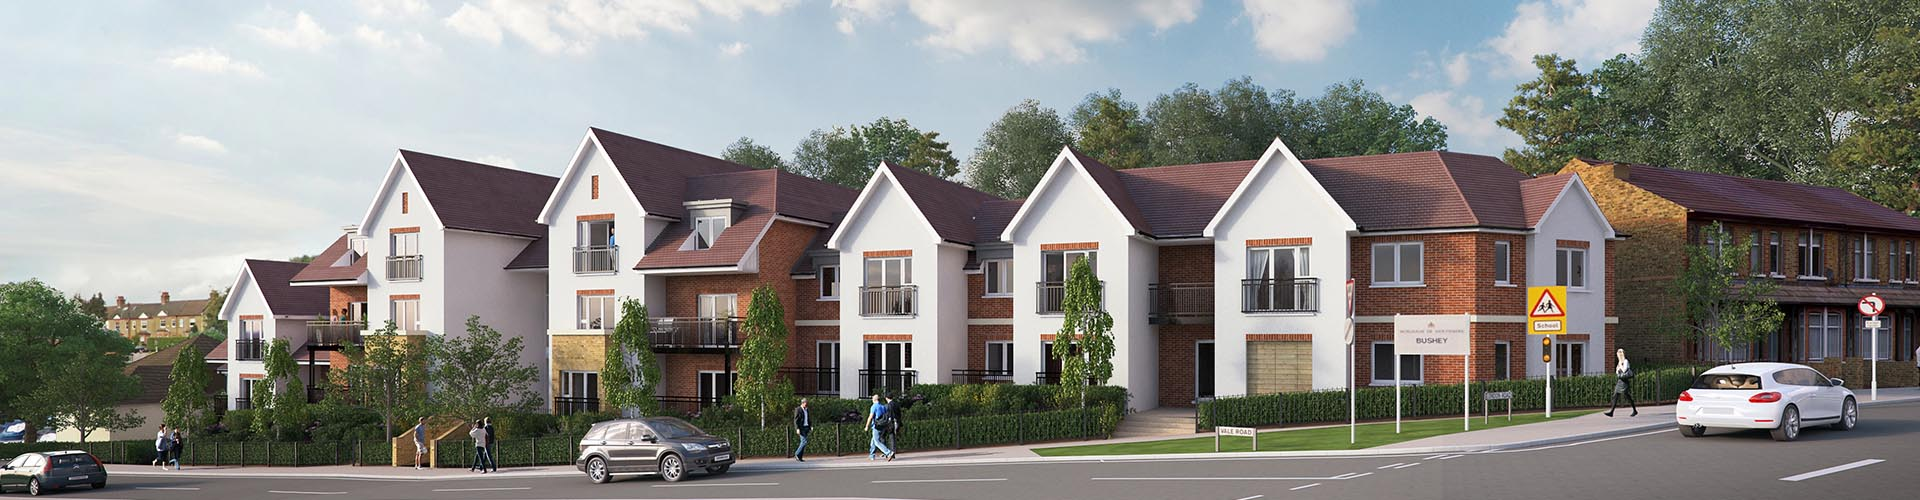 Housing estate development